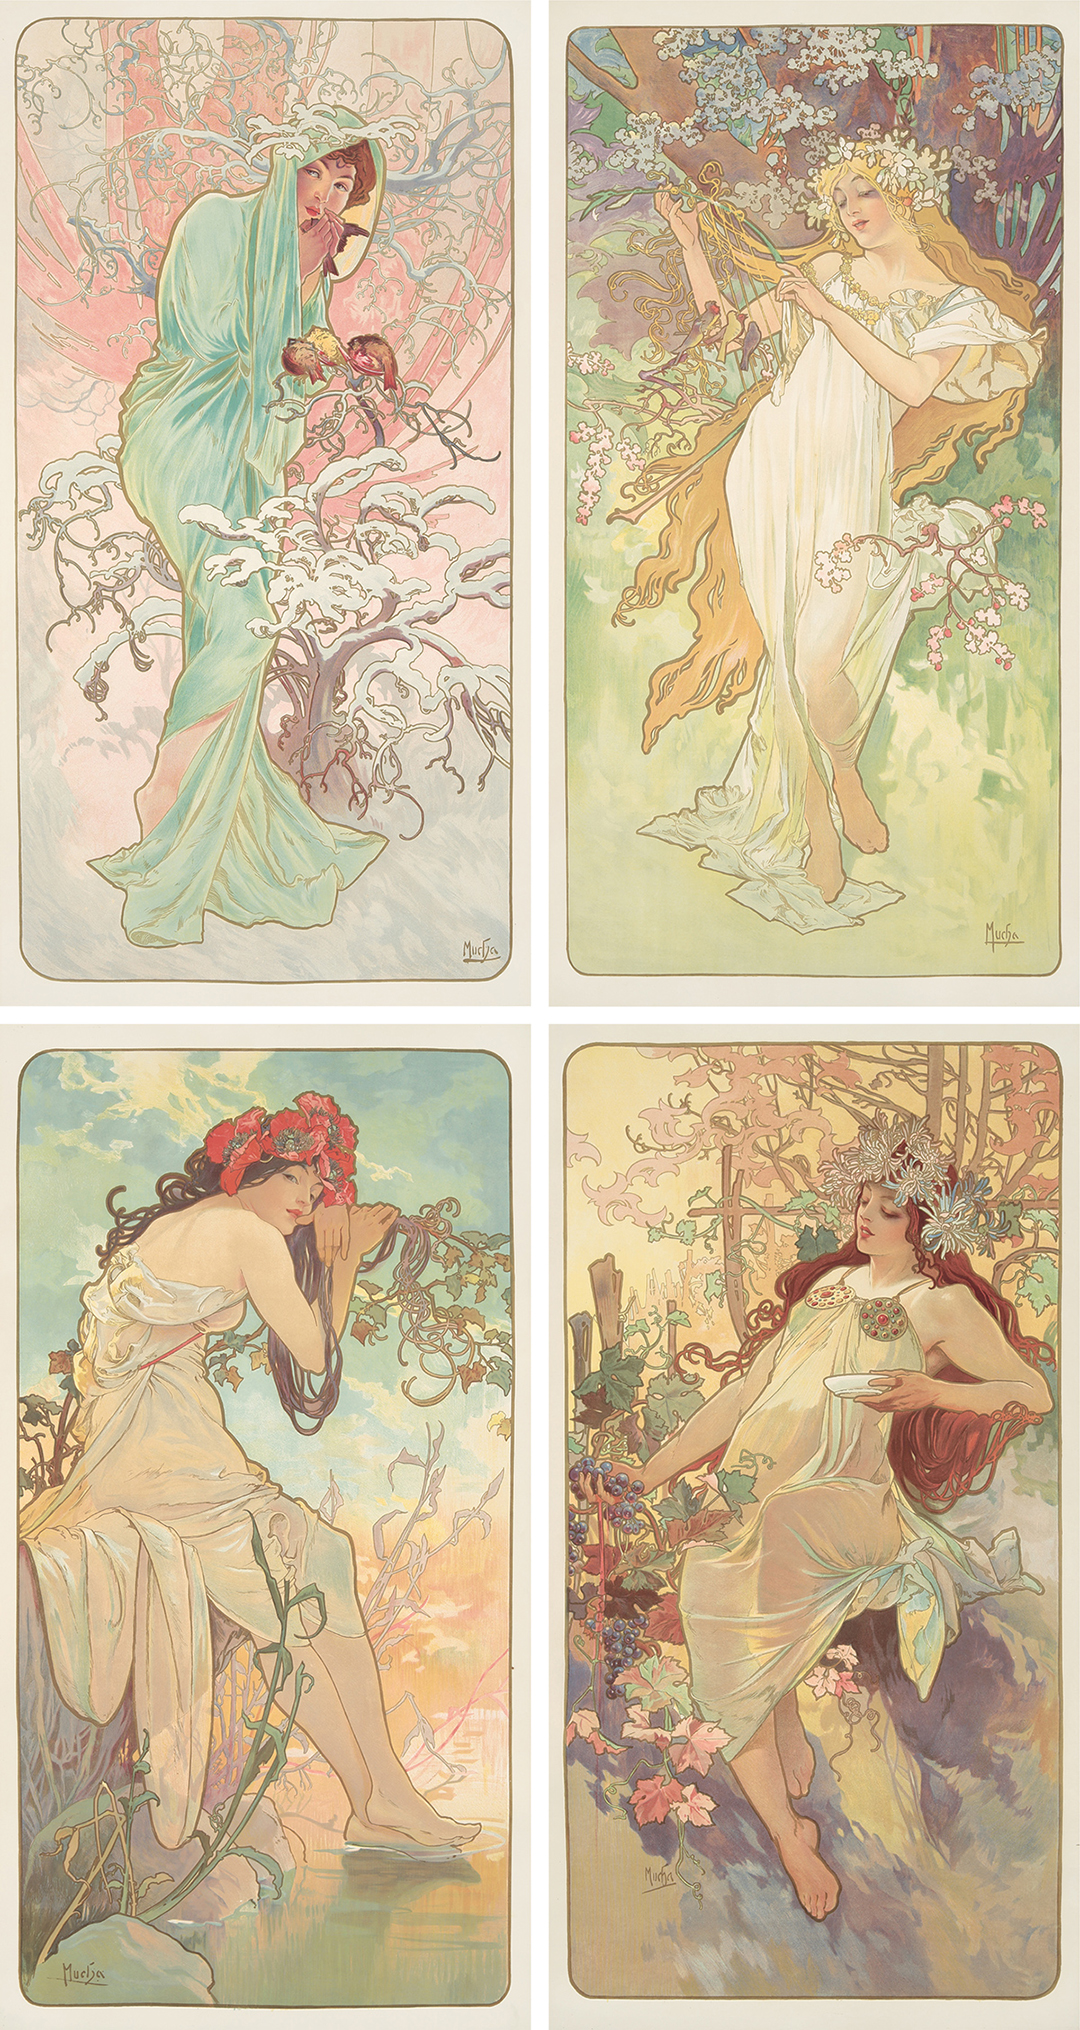 294. The Seasons. 1896.